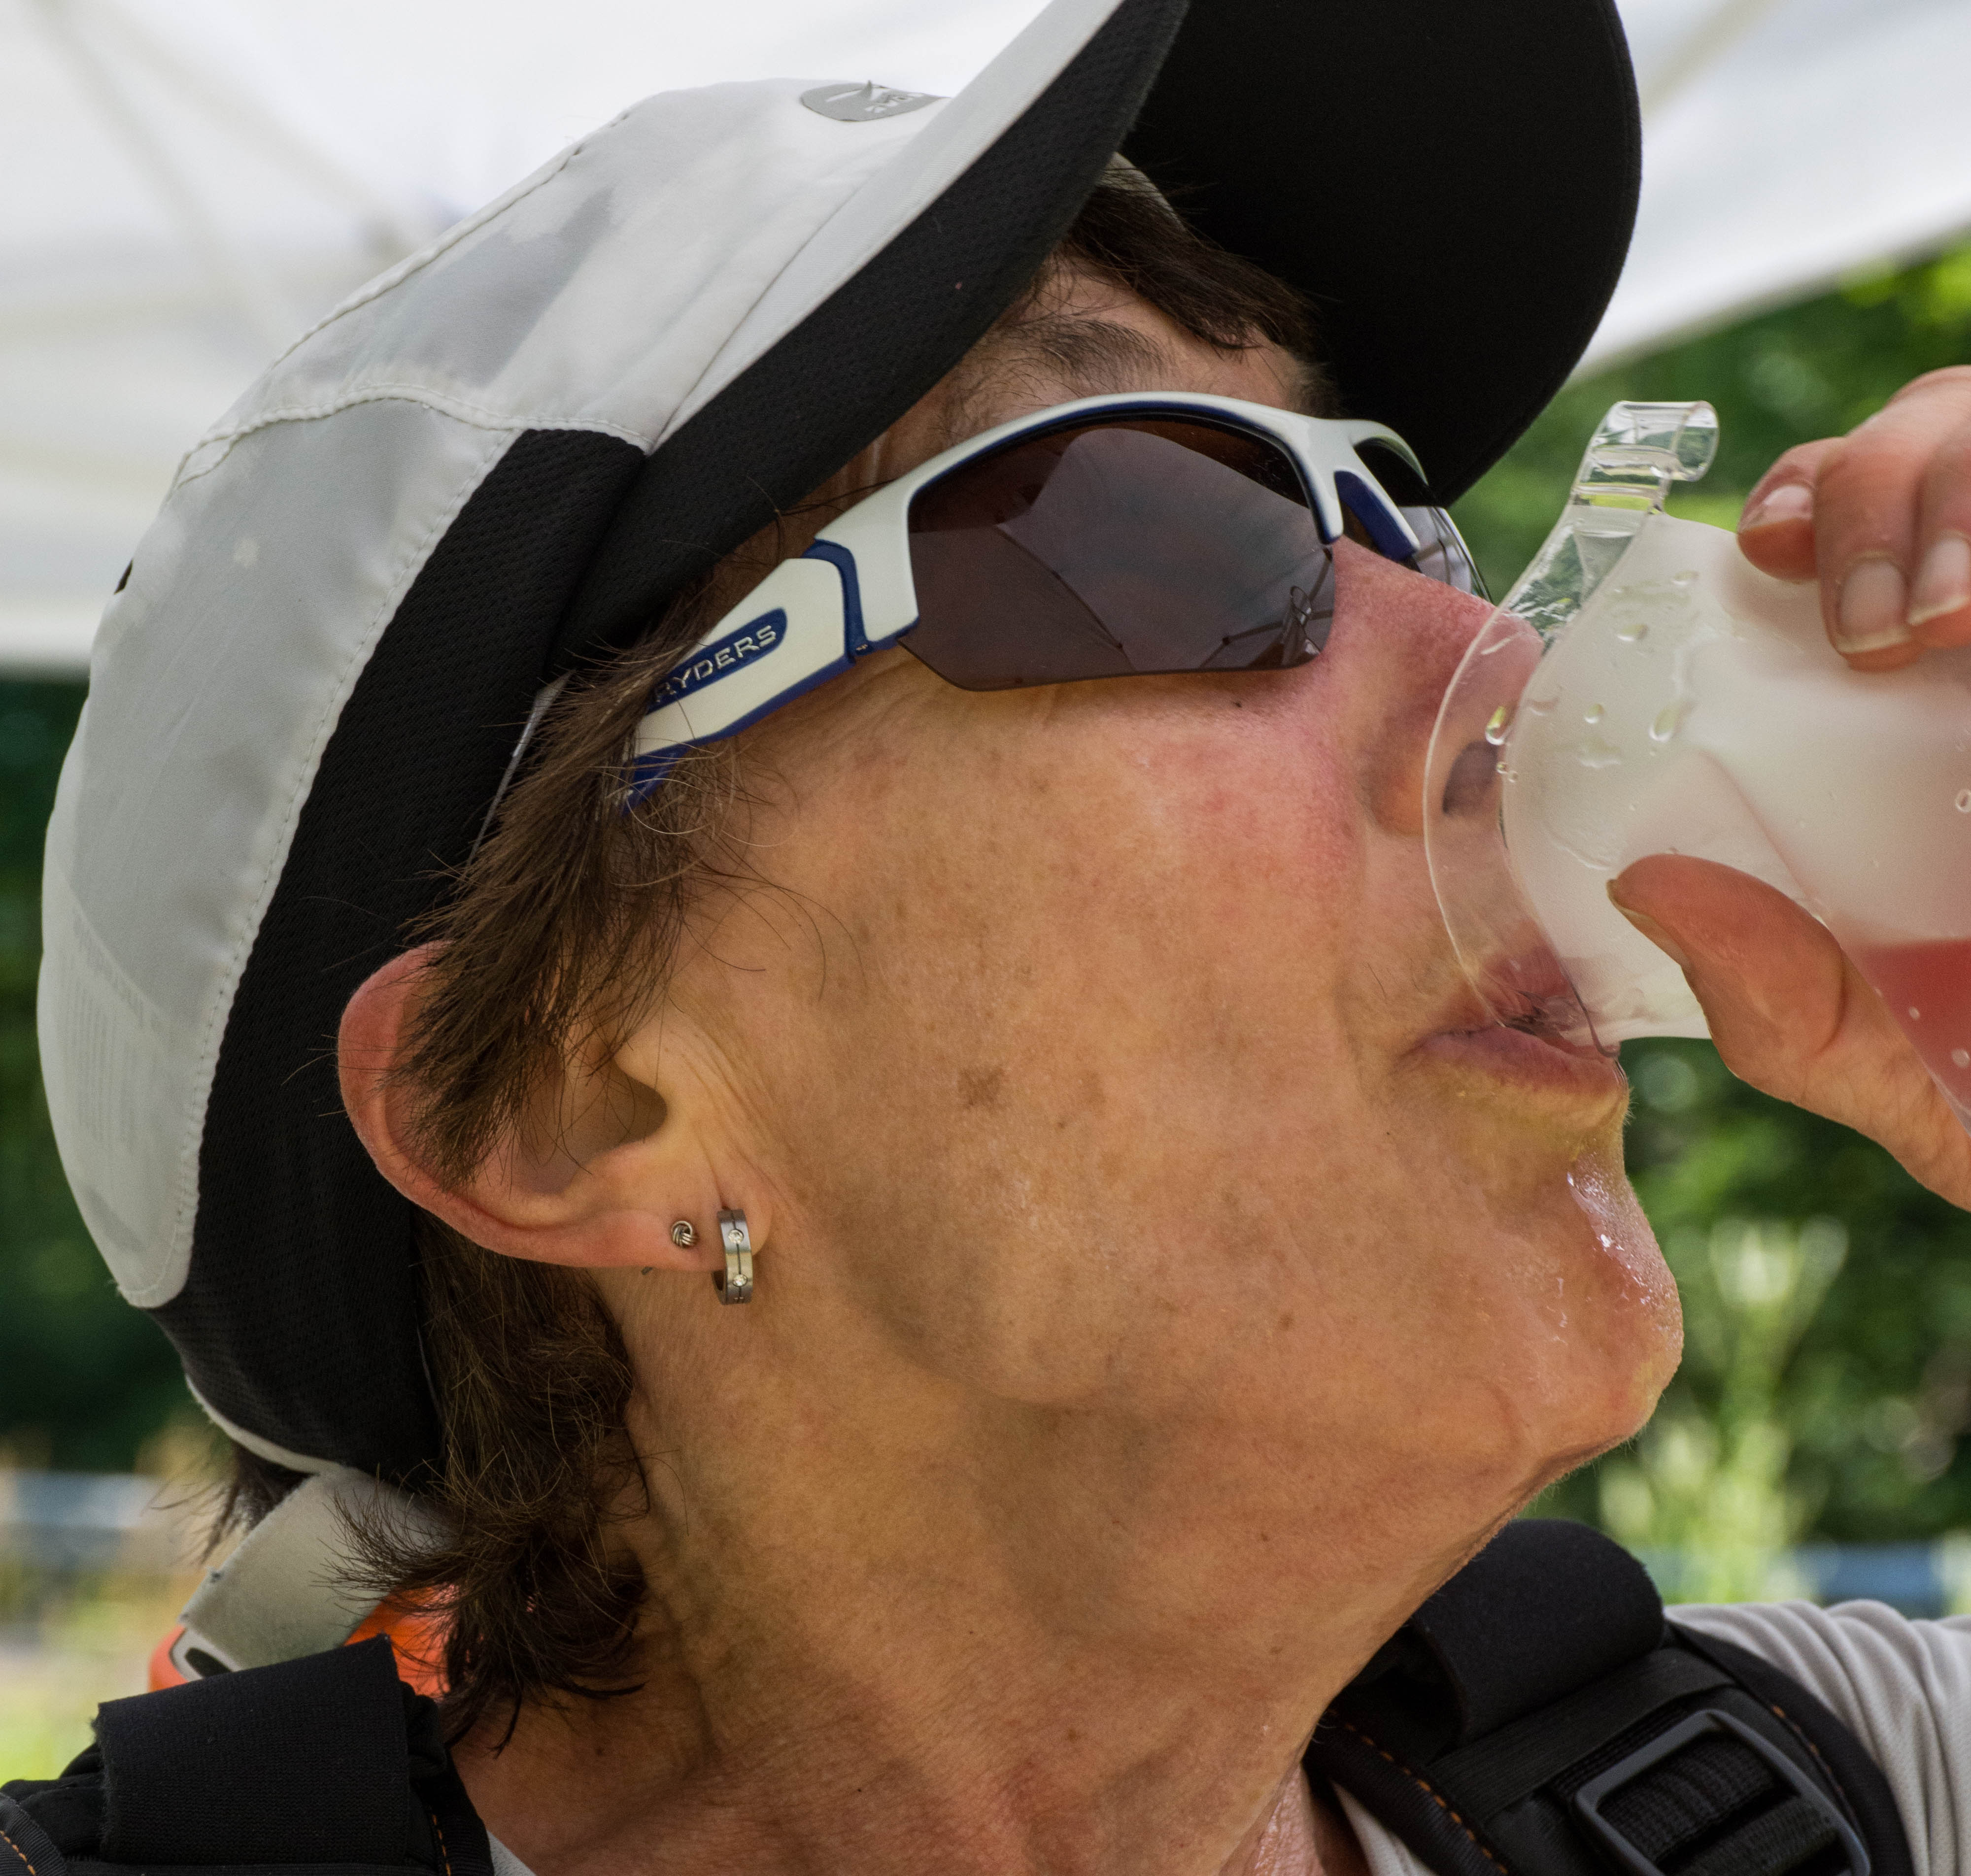 Nutrition and Hydration for the Long Haul